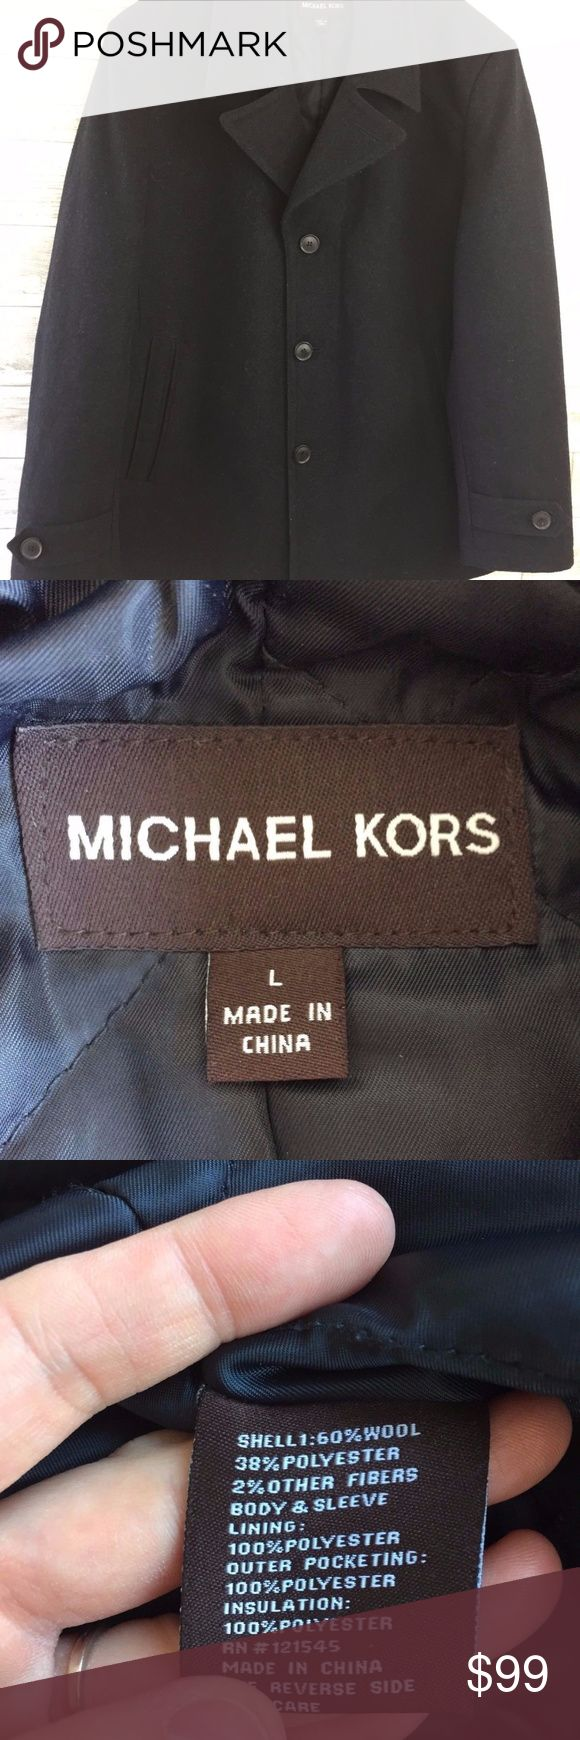 """Michael Kors Large Coat Jacket Charcoal Gray Wool Michael Kors Large Coat Jacket Charcoal Gray Wool Lined Blend Mens No flaws  25.5"""" Pit to pit 32"""" Length 20"""" Shoulder  27"""" Sleeve No flaws Michael Kors Jackets & Coats Pea Coats"""